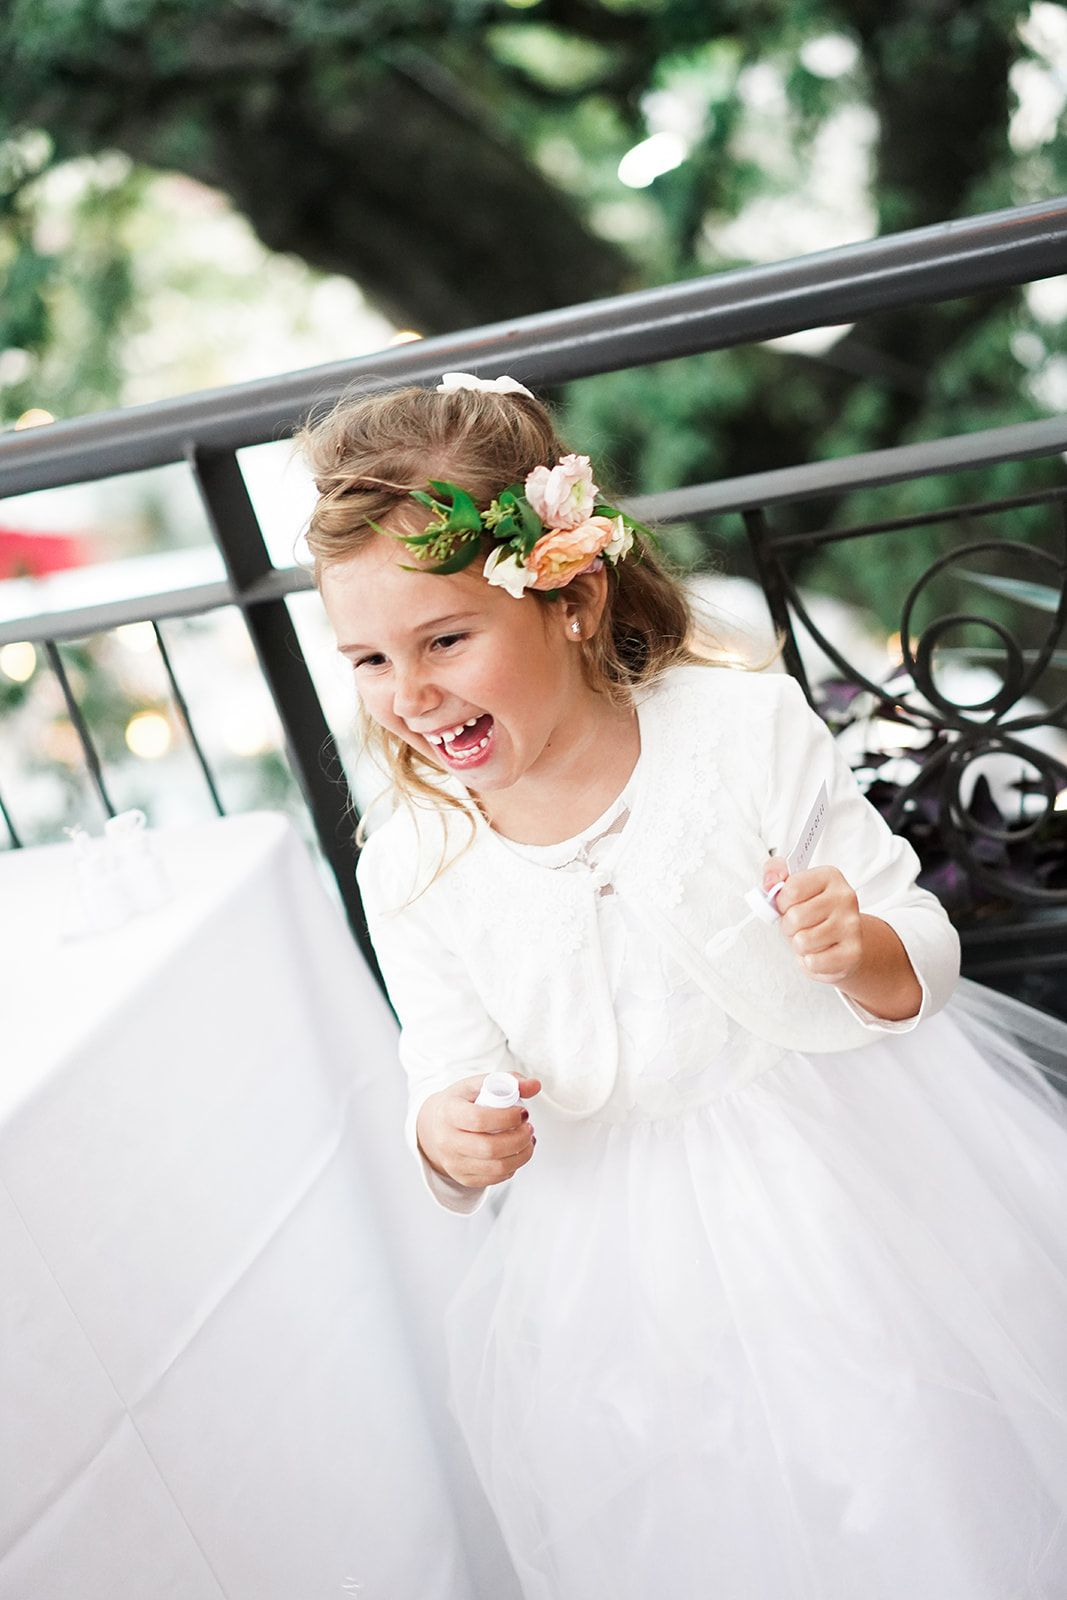 Wedding at Chapel Dulcinea, Lonestar Court, and Olive and